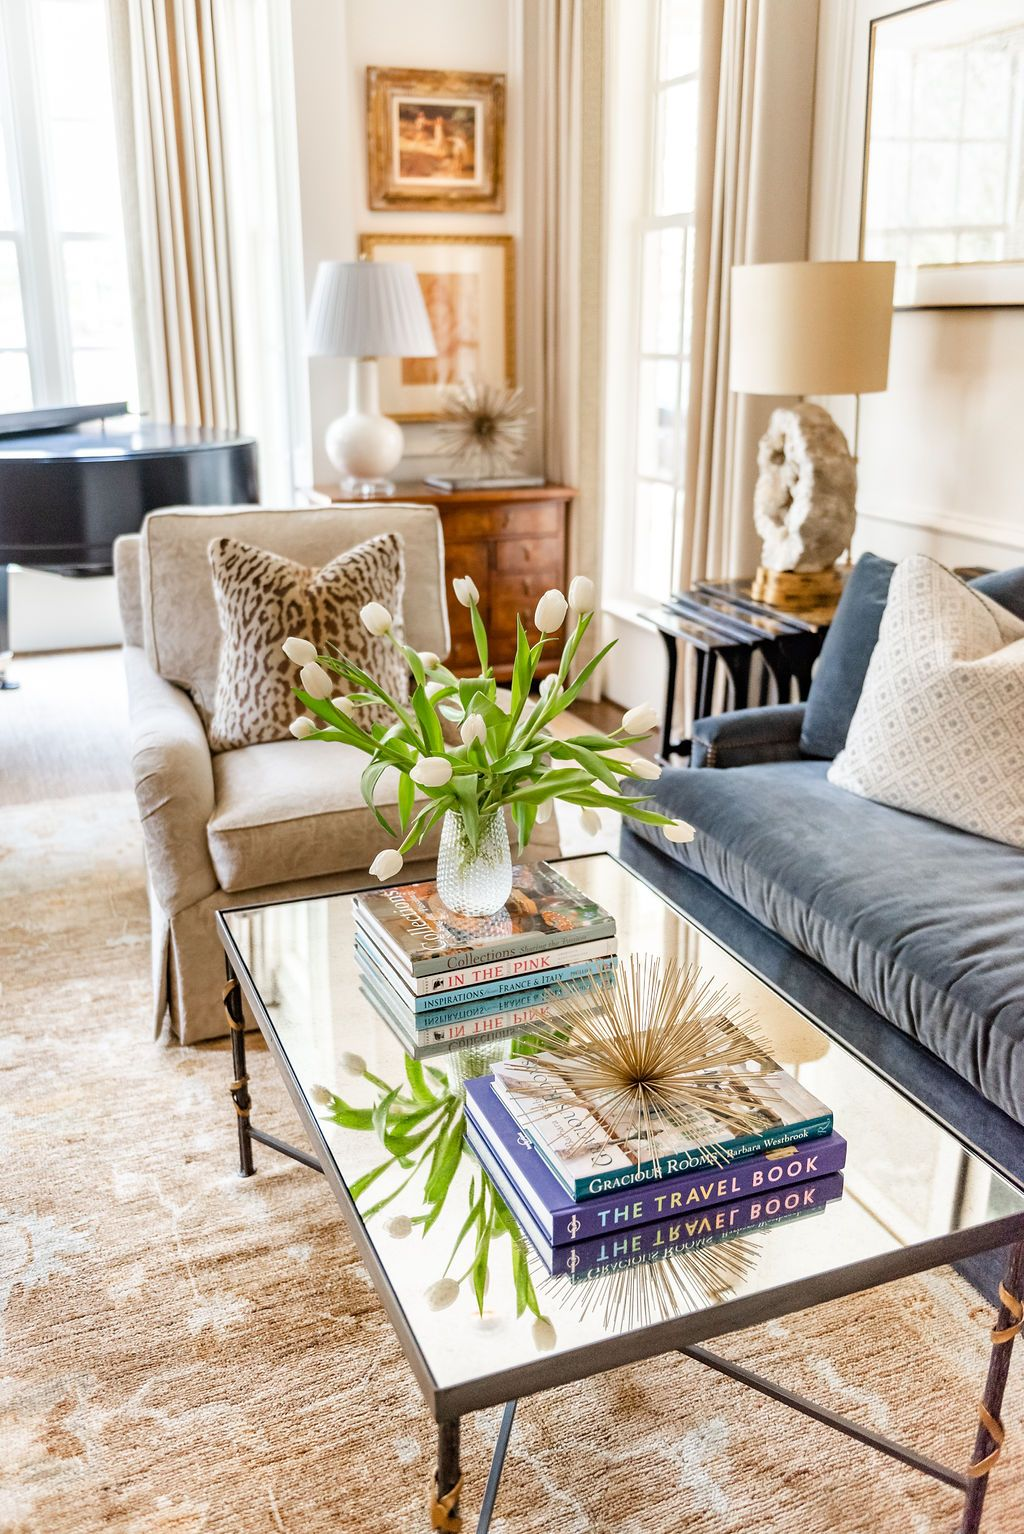 Transitional Living Room Style J Cathell In 2020 Transitional Living Rooms Home Living Room Living Room Style #transitional #living #room #decor